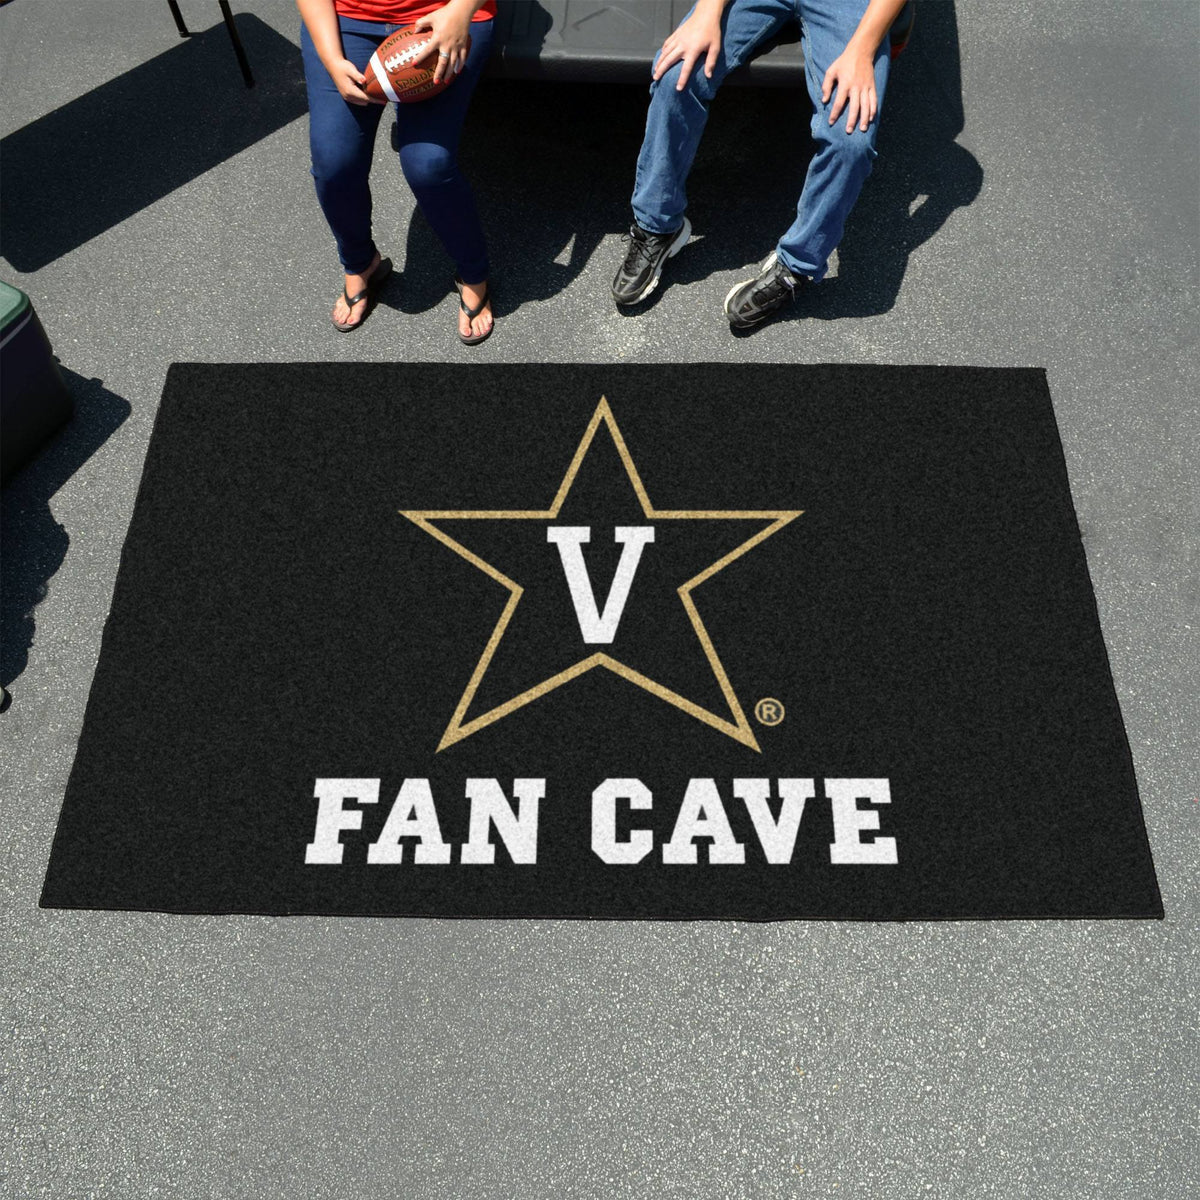 Collegiate - Football Field Runner Collegiate Mats, Rectangular Mats, Football Field Runner, Collegiate, Home Fan Mats Vanderbilt